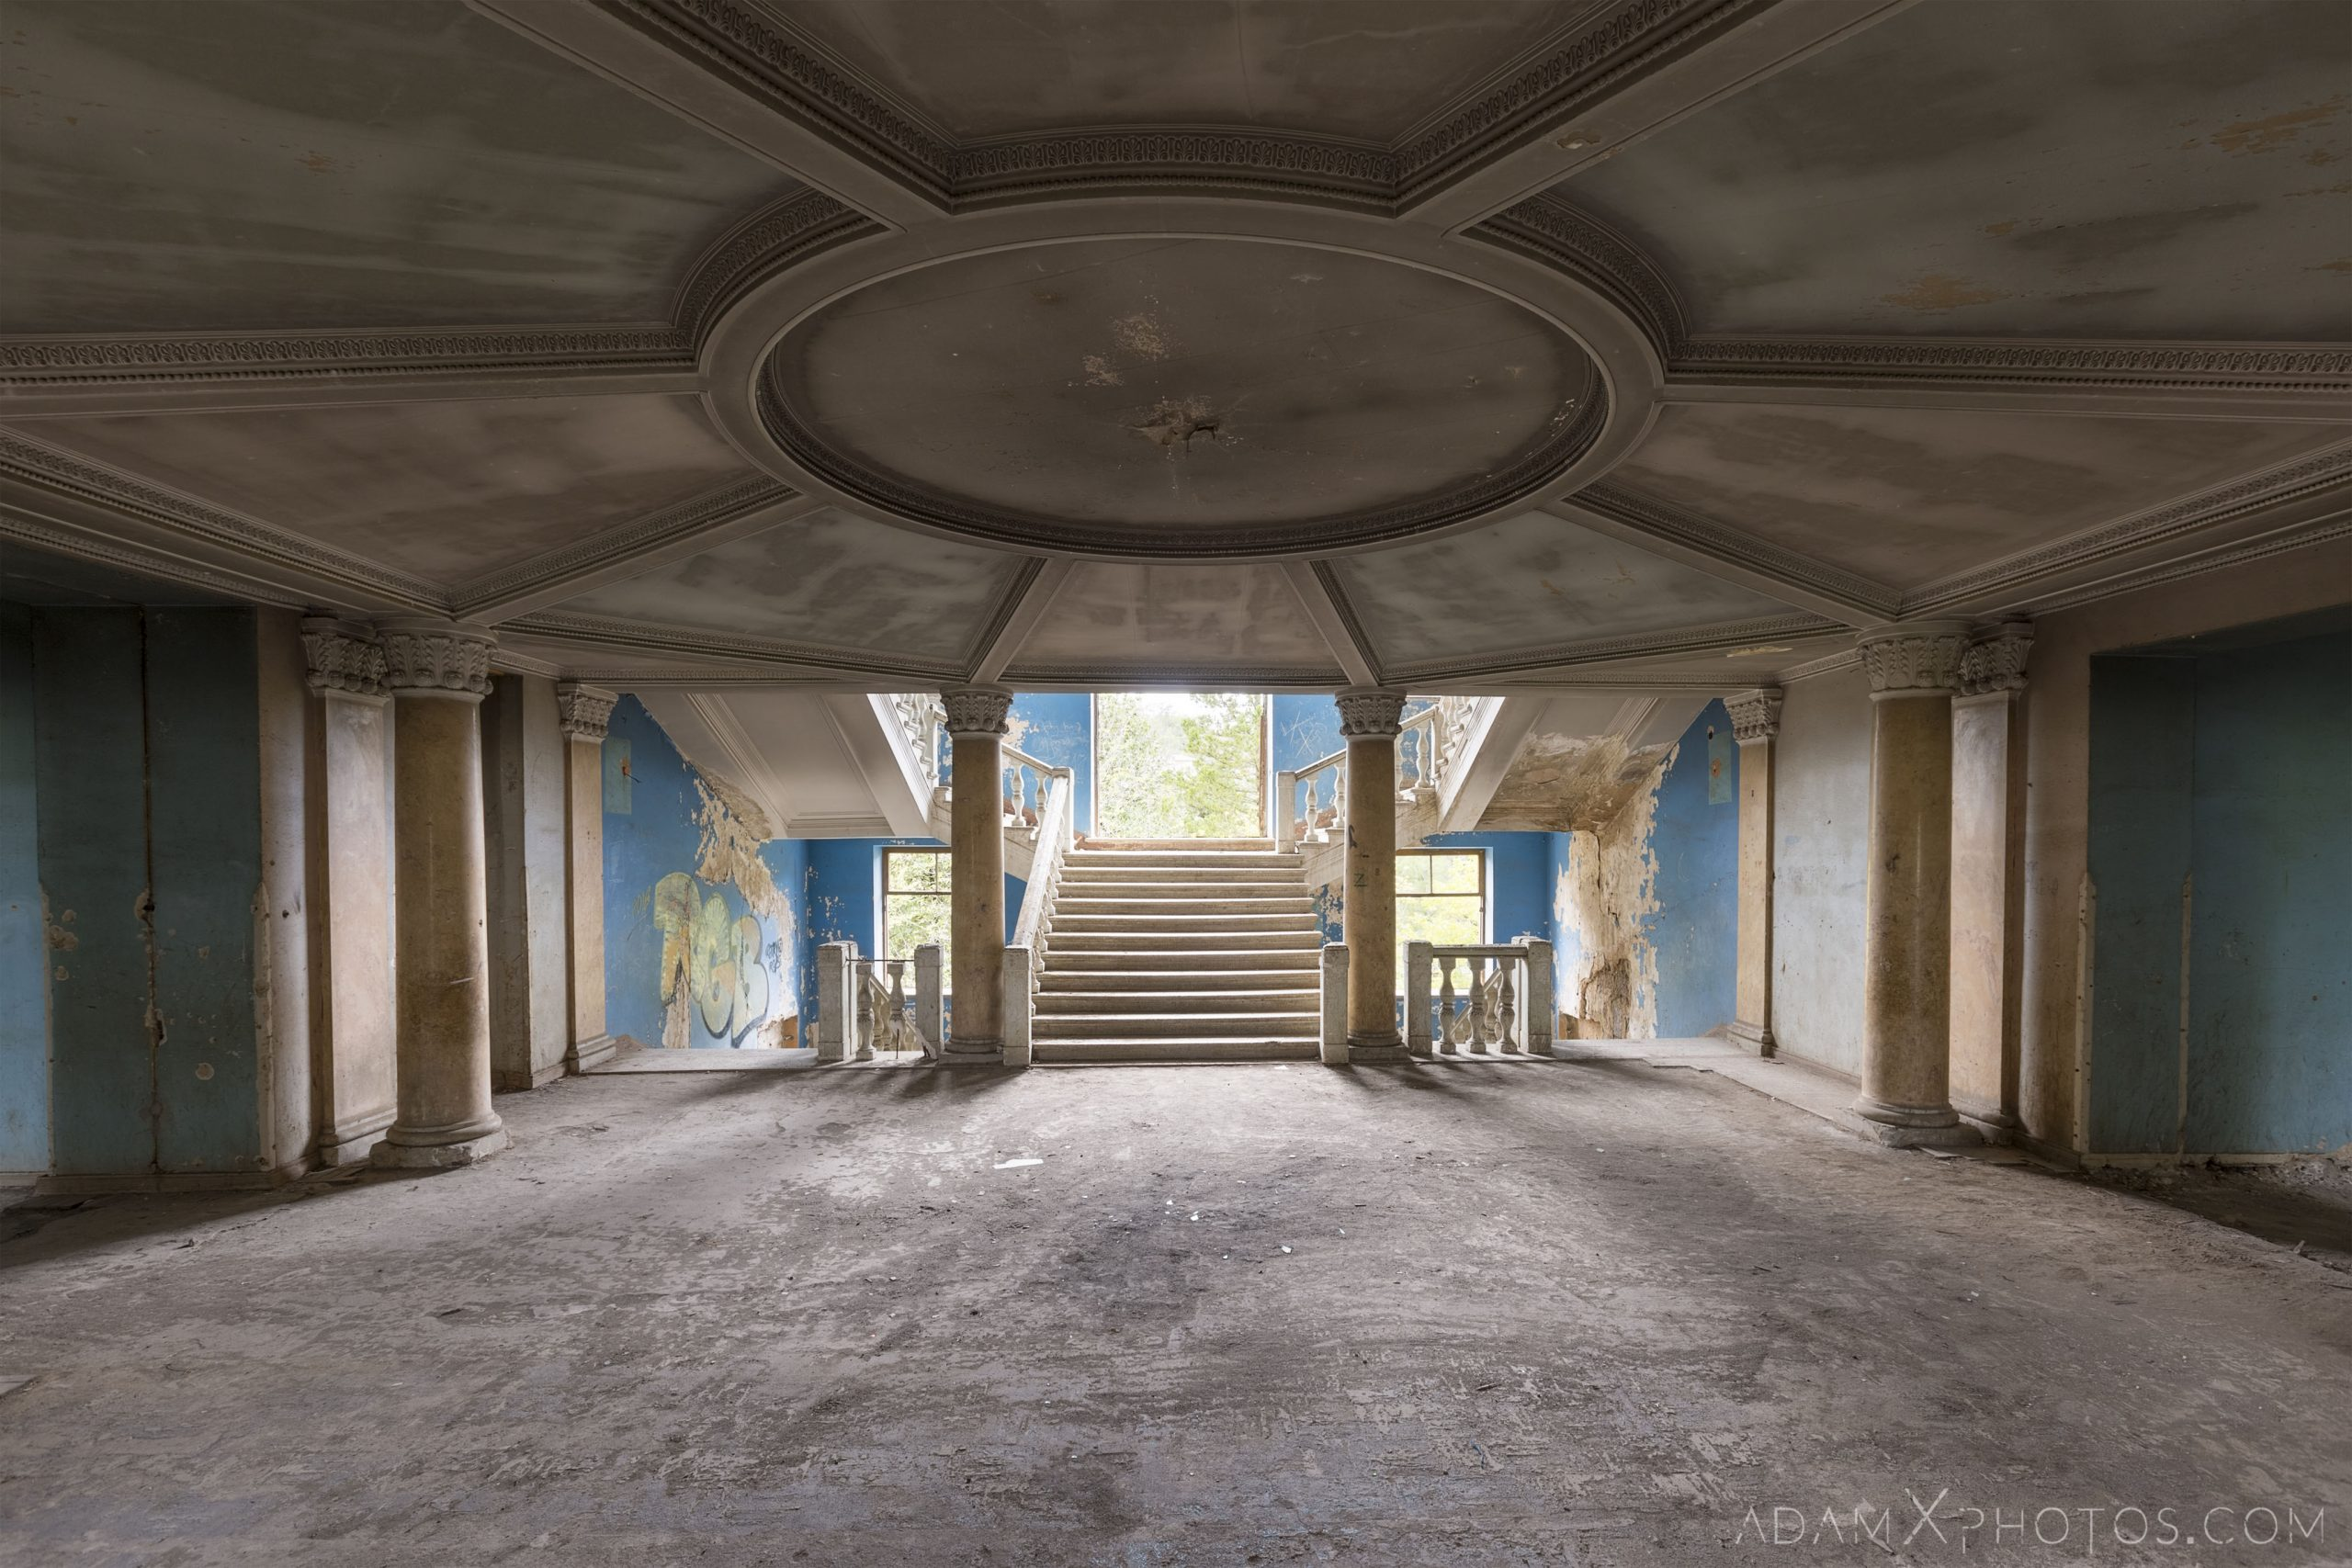 Blue stairs staircase Blue stairs ceiling hole circular graffiti Sanatorium Iveria Tskaltubo Georgia Soviet era Adam X Urbex Urban Exploration 2018 Abandoned Access History decay ruins lost forgotten derelict location creepy haunting eerie security